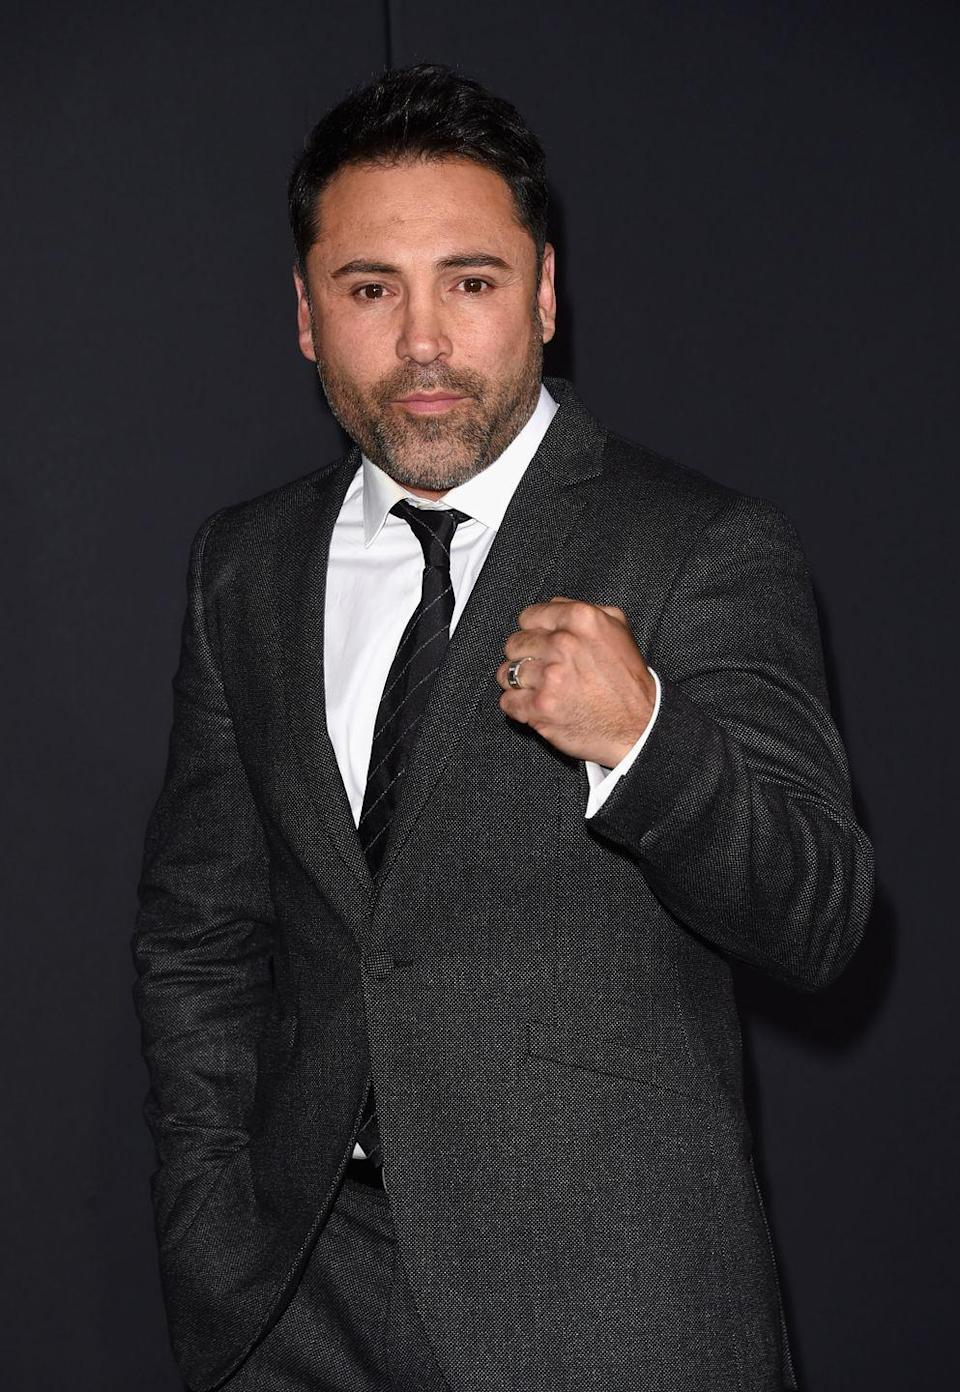 """<p>In September 2018, the legendary boxer said he was serious about running for president in 2020. """"It's real,"""" he told the <em><a href=""""https://www.latimes.com/sports/la-sp-canelo-alvarez-gennady-golovkin-oscar-de-la-hoya-wants-to-run-for-1536706386-htmlstory.html"""" rel=""""nofollow noopener"""" target=""""_blank"""" data-ylk=""""slk:Los Angeles Times"""" class=""""link rapid-noclick-resp"""">Los Angeles Times</a></em>. """"That's the beauty of our nation. If Arnold (Schwarzenegger) can be governor, if Trump can be president, then why can't a Mexican American who won an Olympic gold medal, who's over 35 and a U.S. citizen, run for presidency?"""" Since De La Hoya hasn't made it to any of the debates, it's safe to assume his political aspirations have changed.<br></p>"""